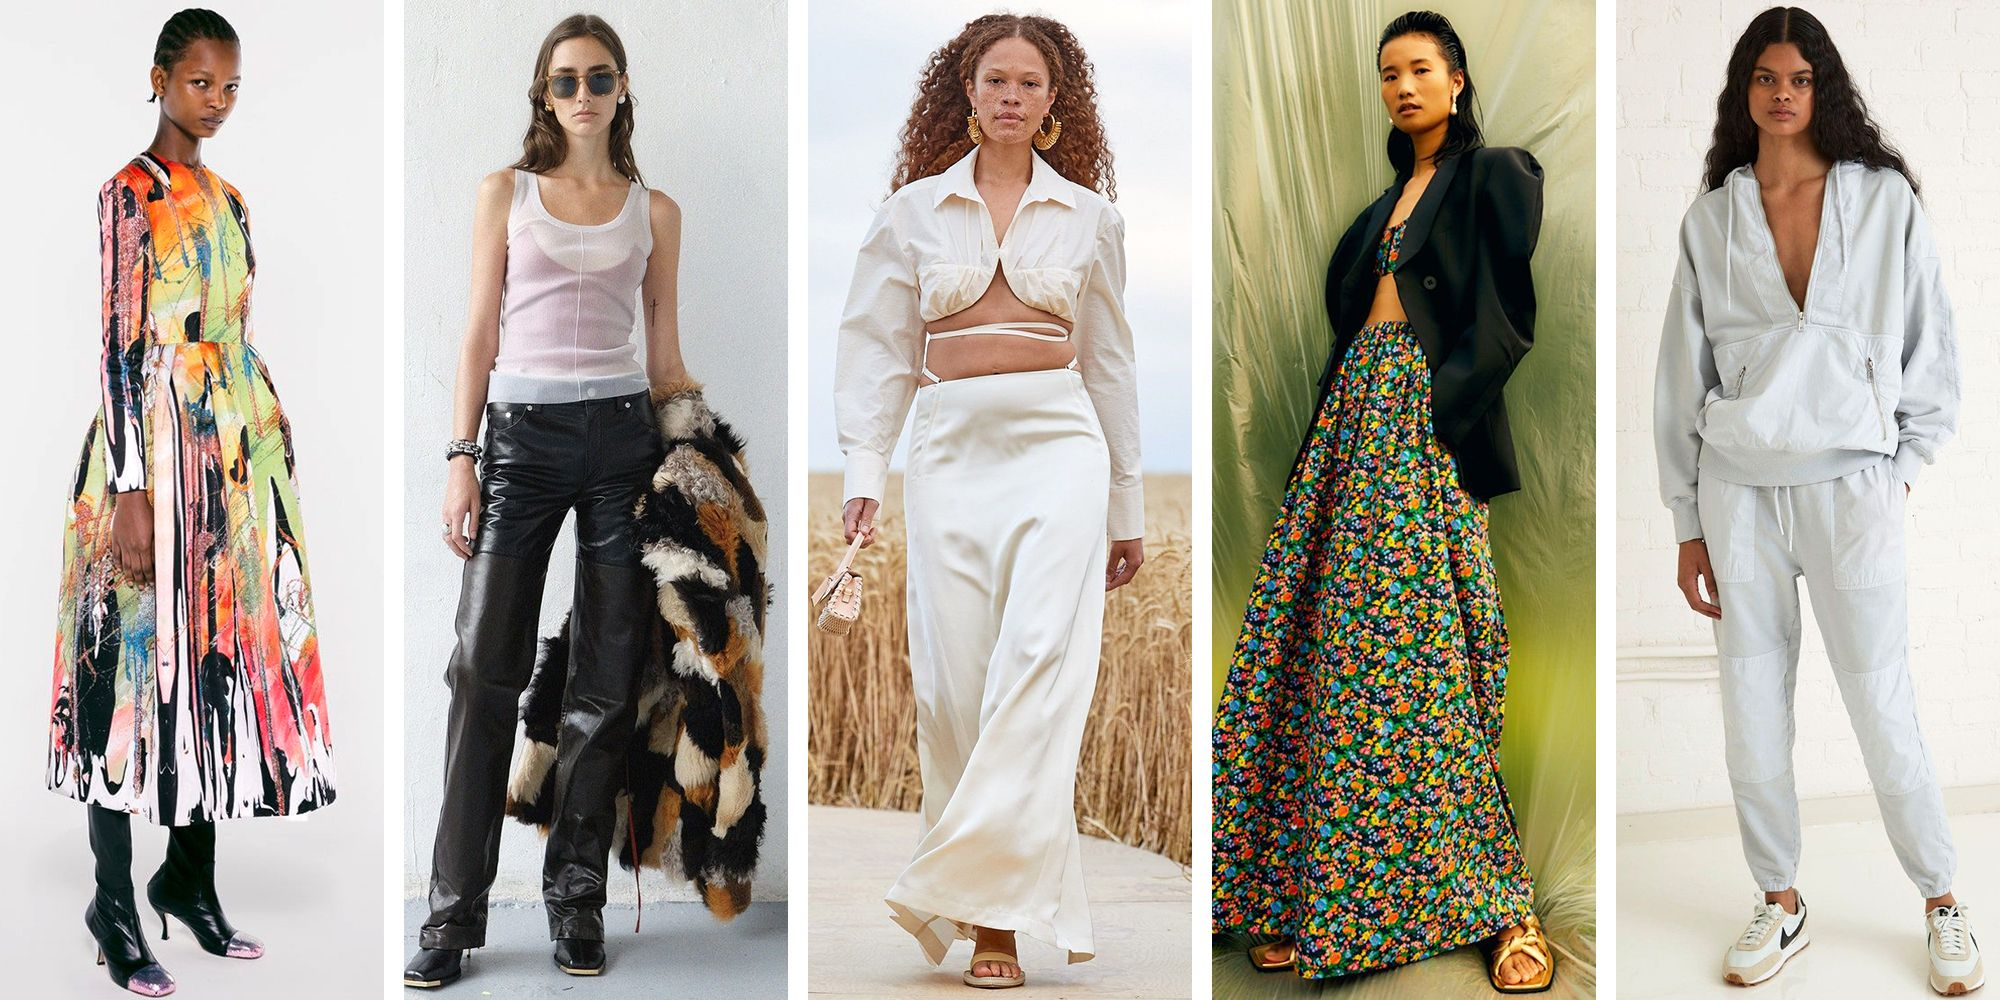 The Biggest Trends of Spring 4 So Far